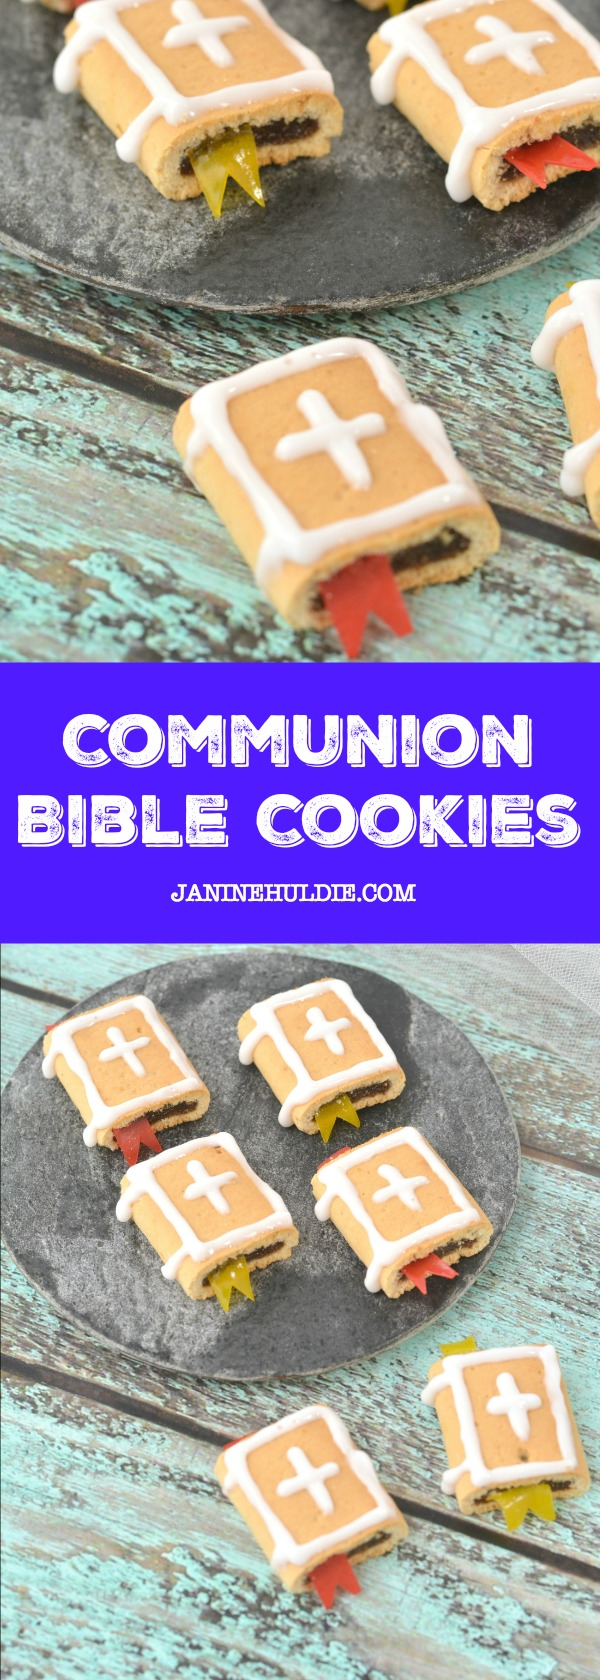 Communion Bible Cookies Recipe